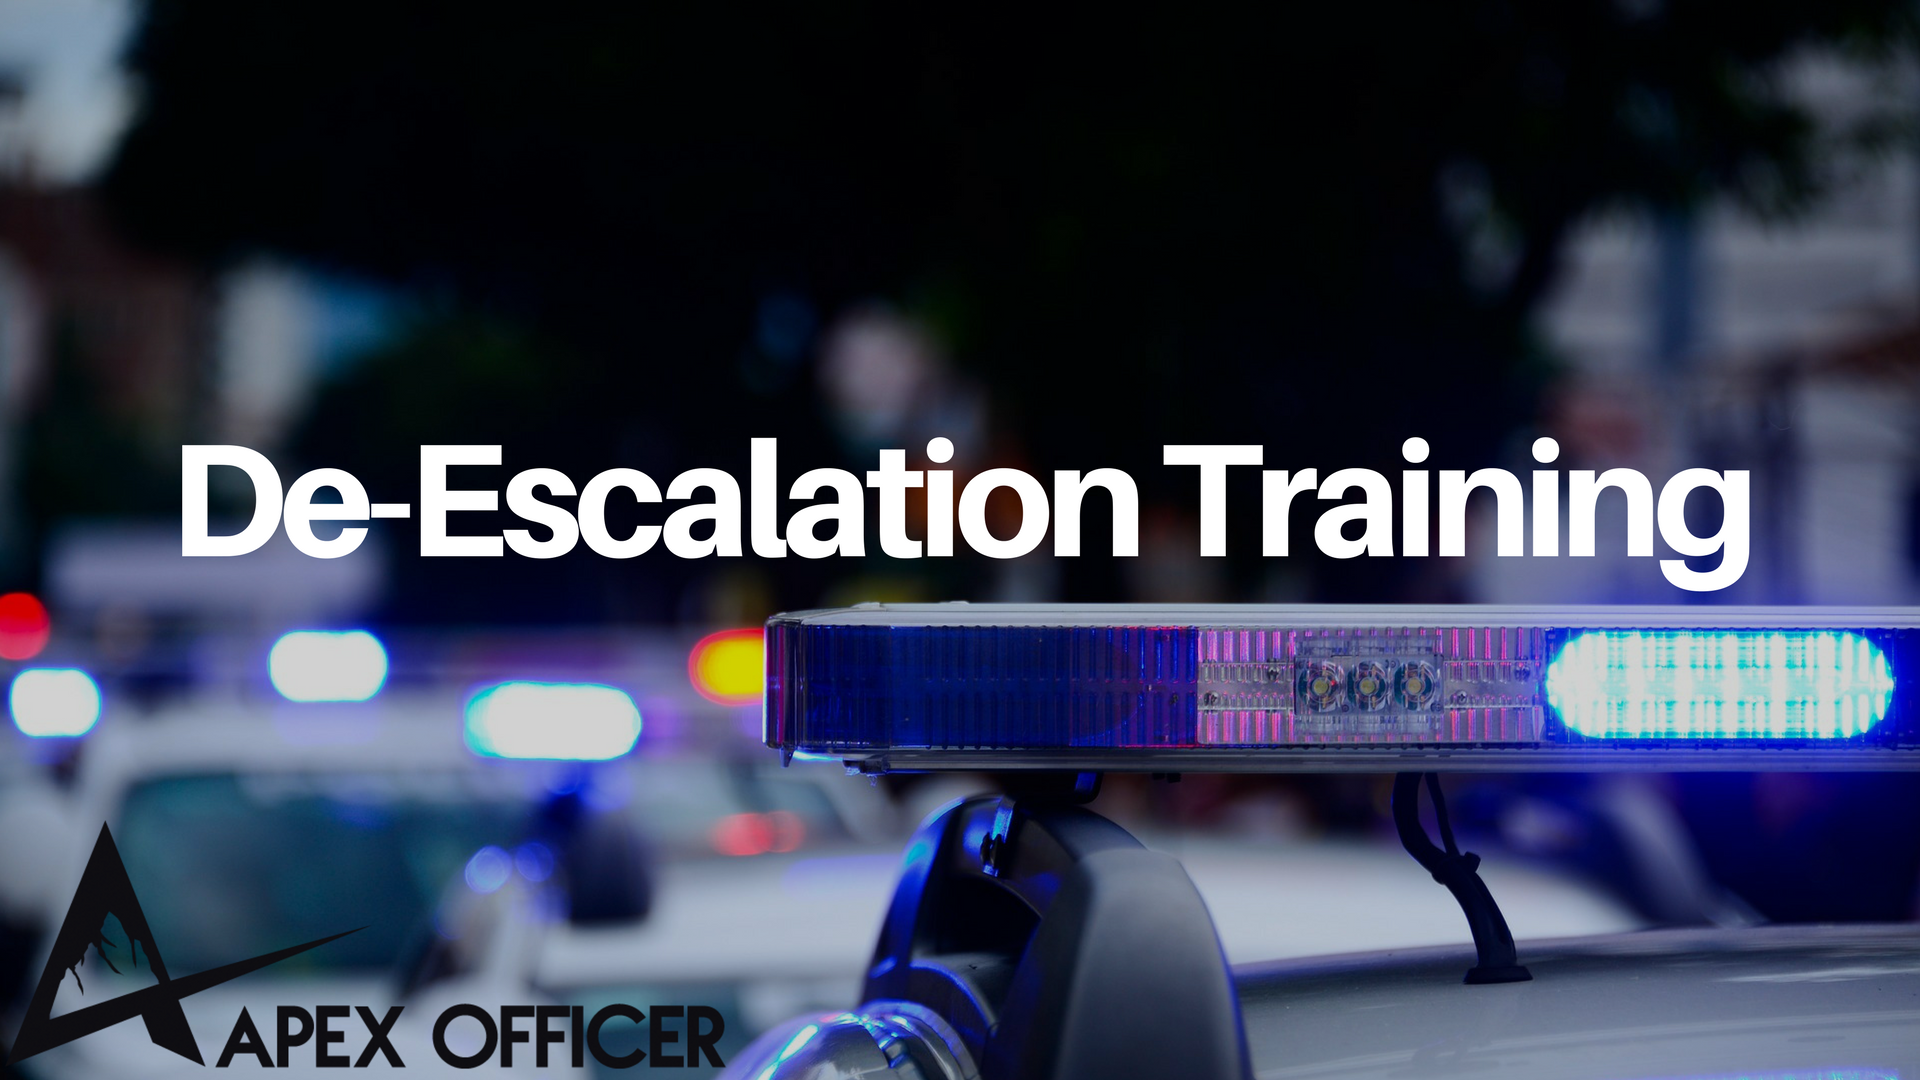 APEX Officer De-Escalation Training Graphic